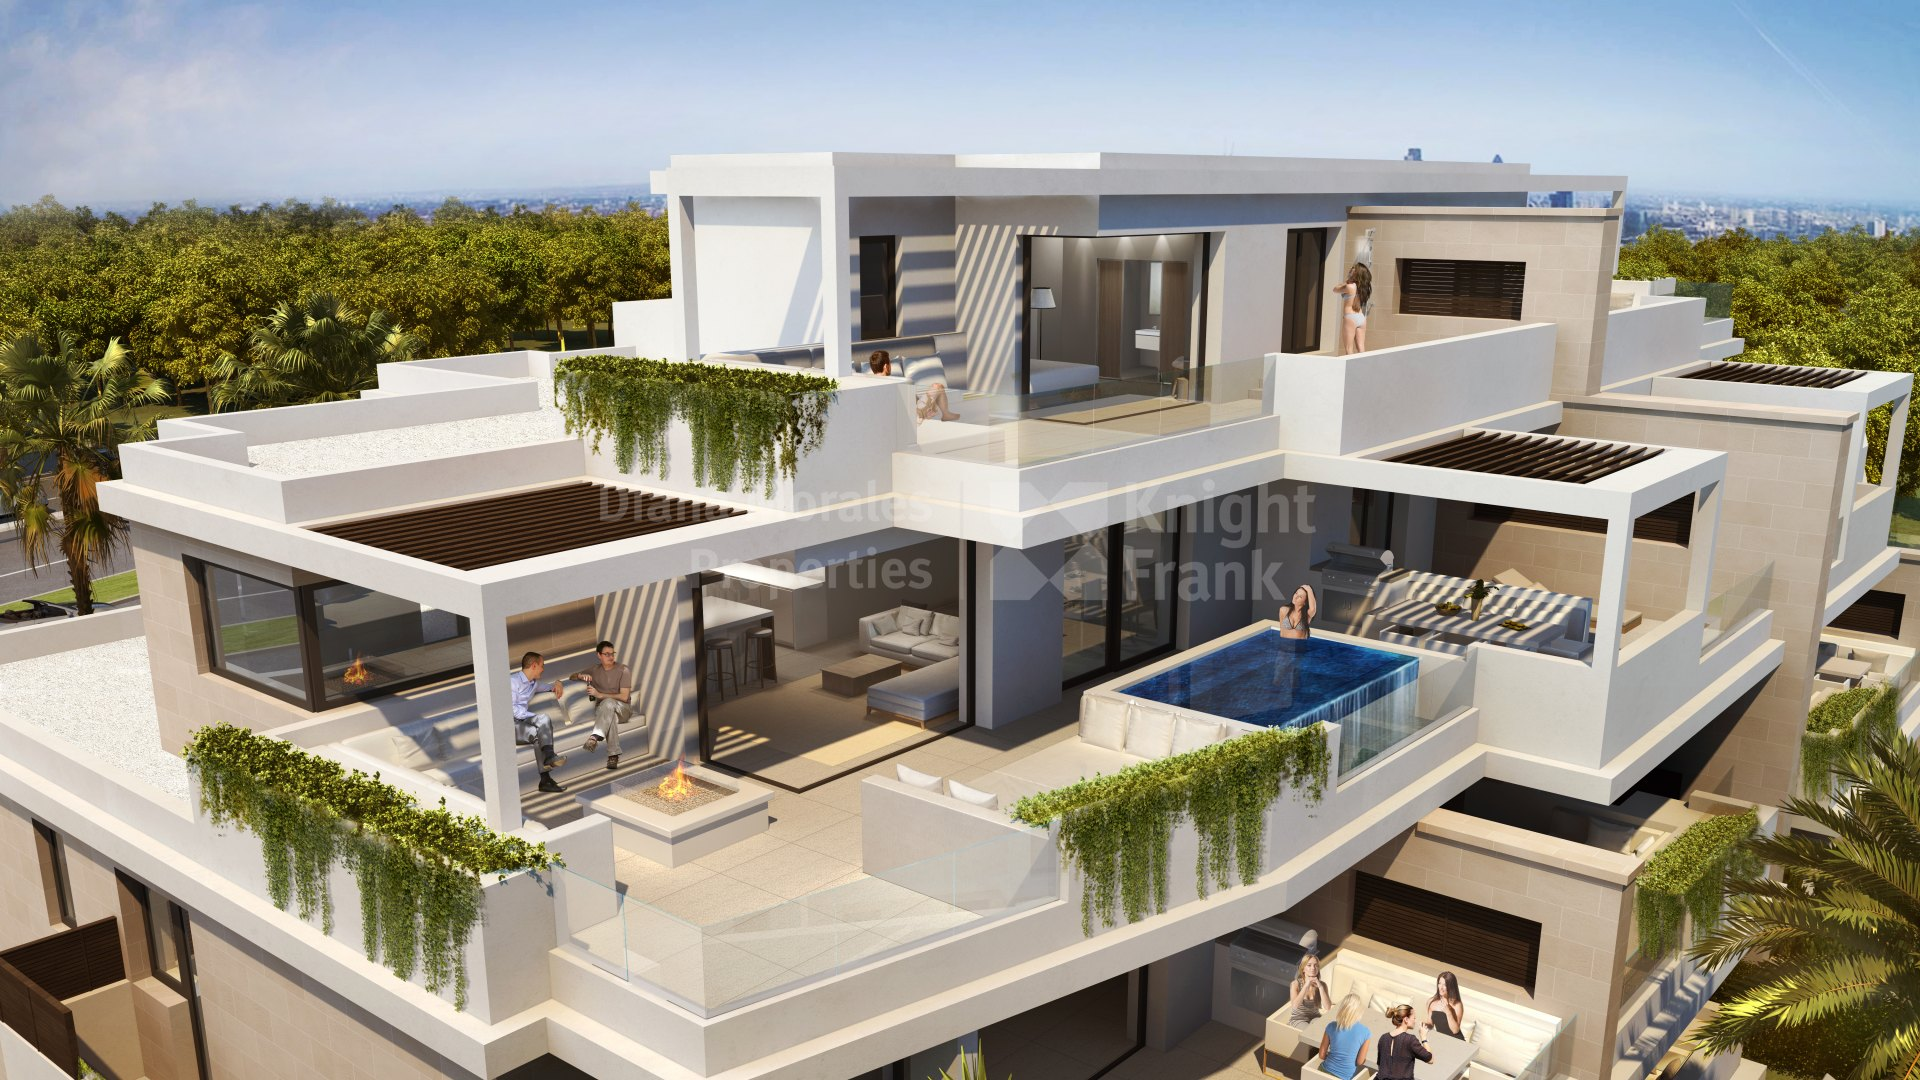 New Golden Mile, Fabuleux appartement penthouse en duplex sur le front de mer